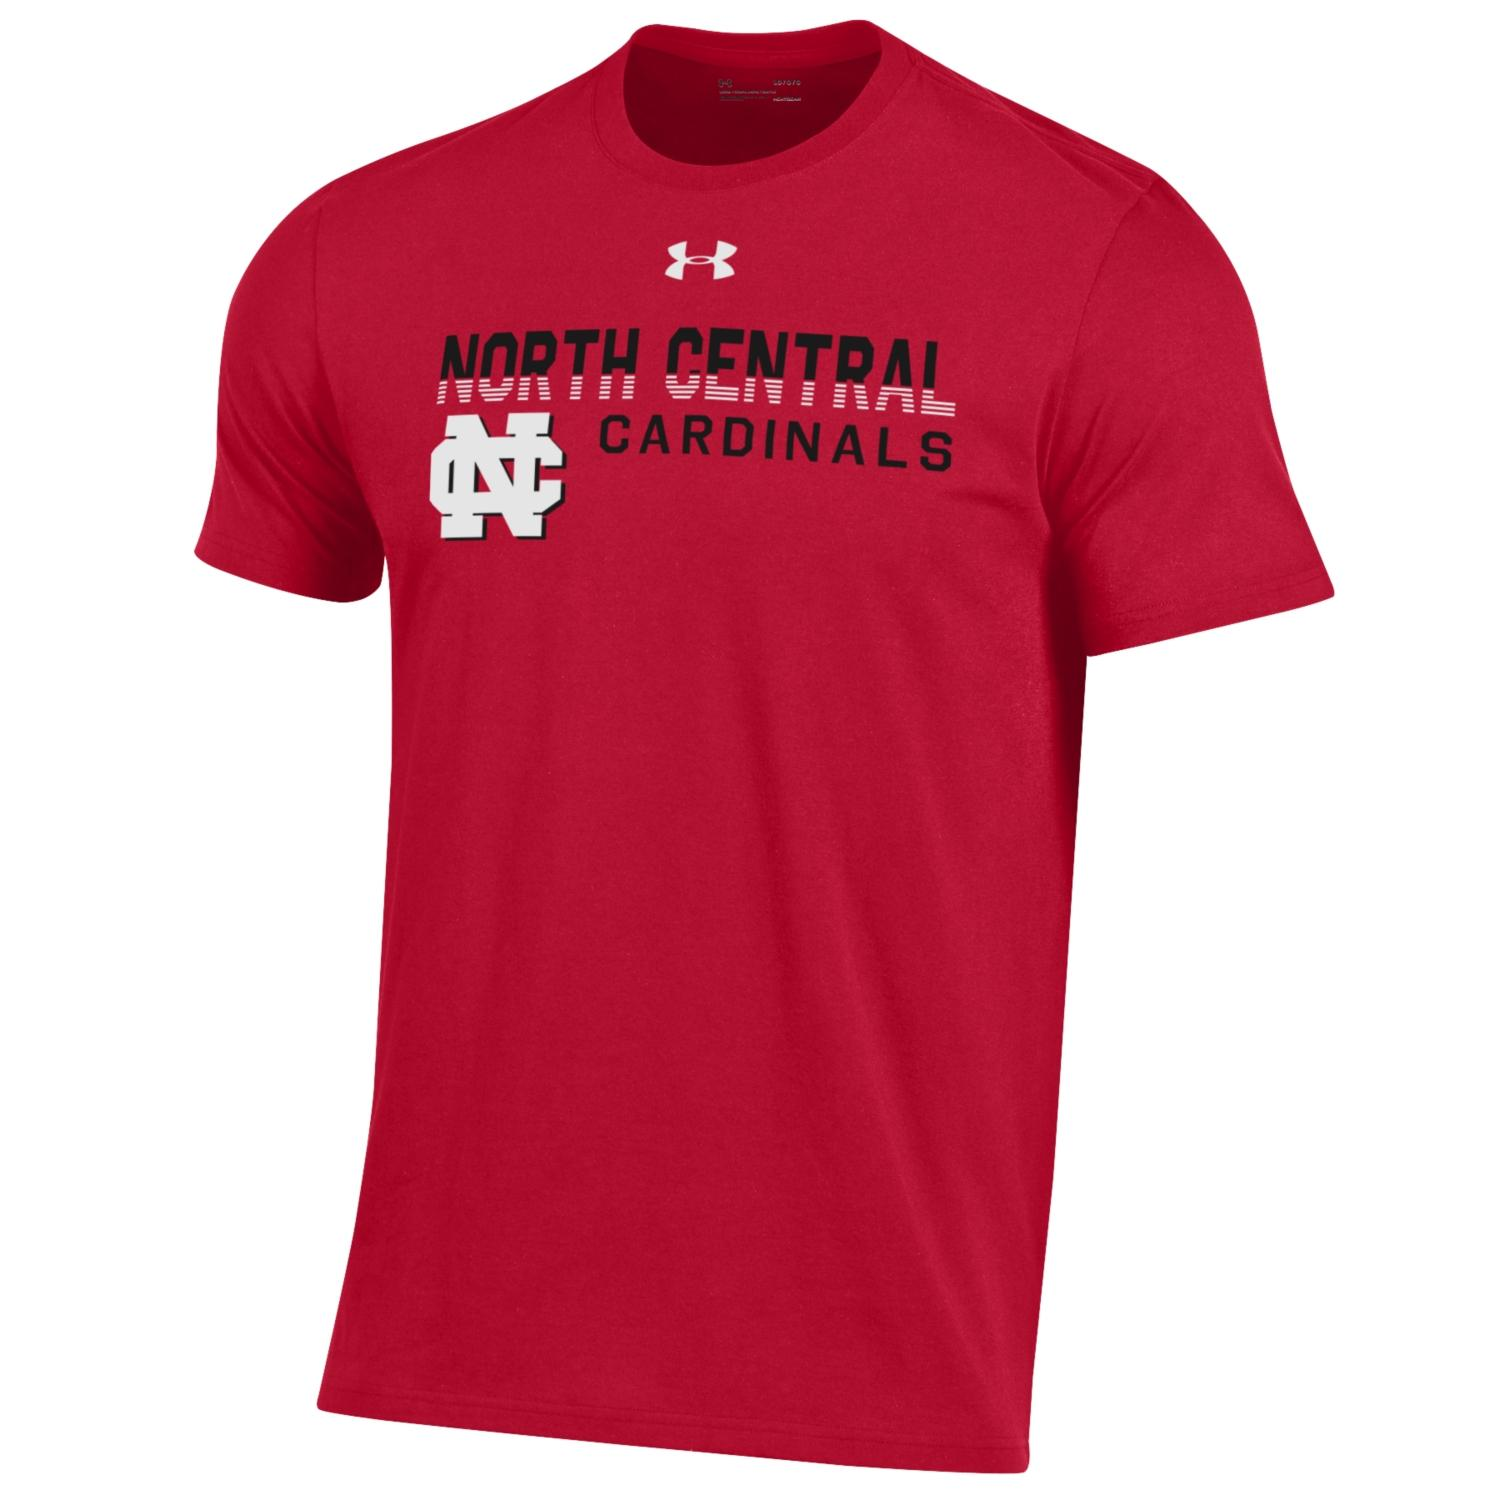 Alternative Image for the Under Armour Performance Cotton Short Sleeve Tee product